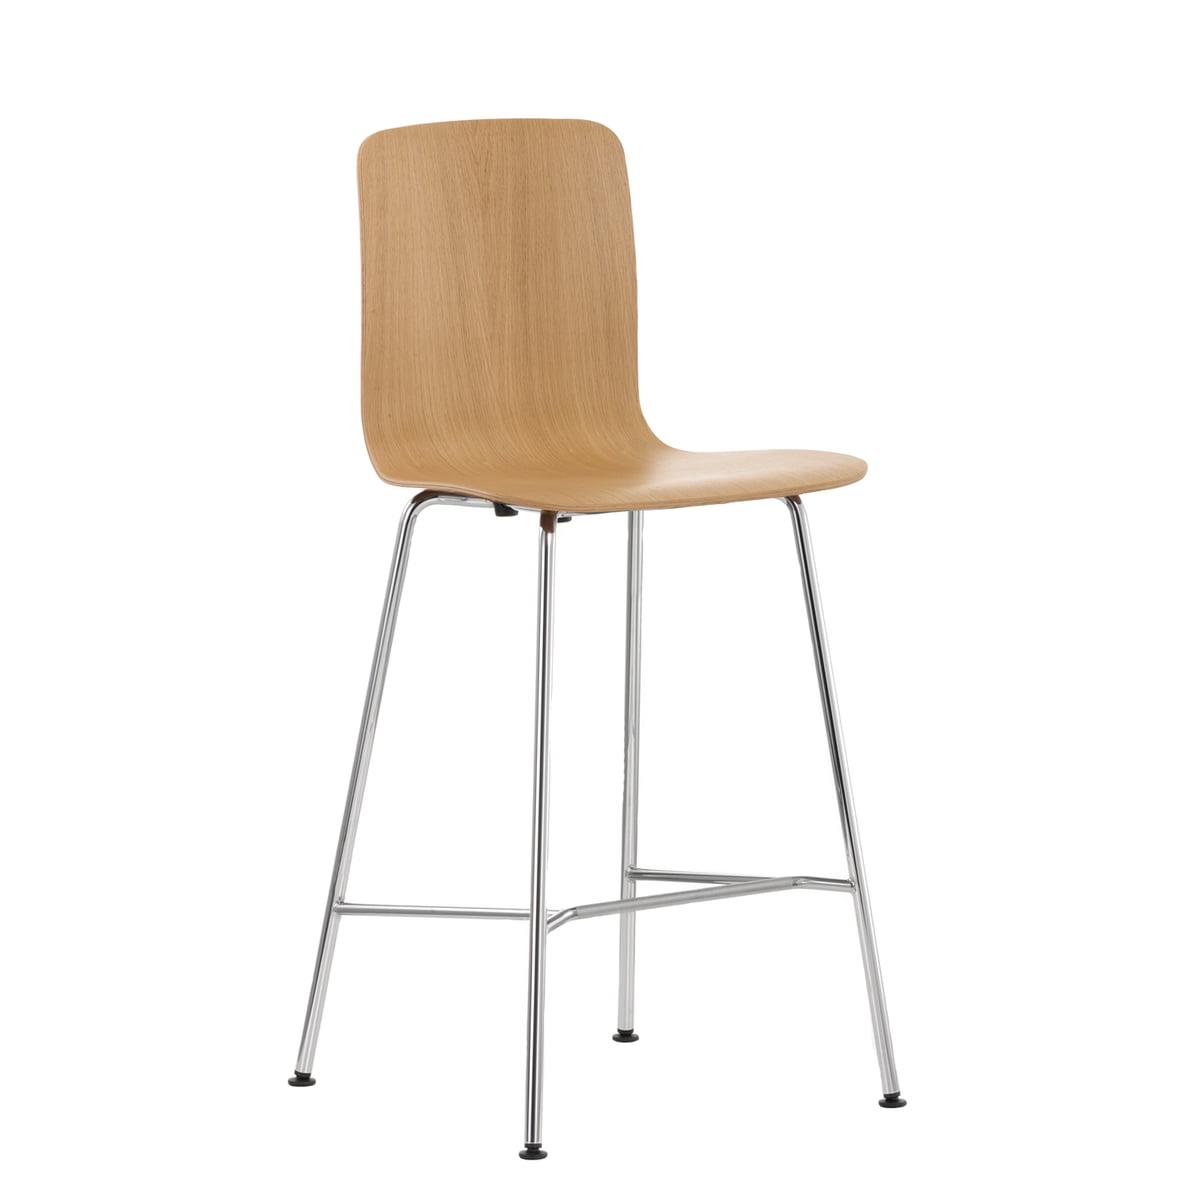 HAL Ply Stool Medium - Tabourets de bar / Vitra